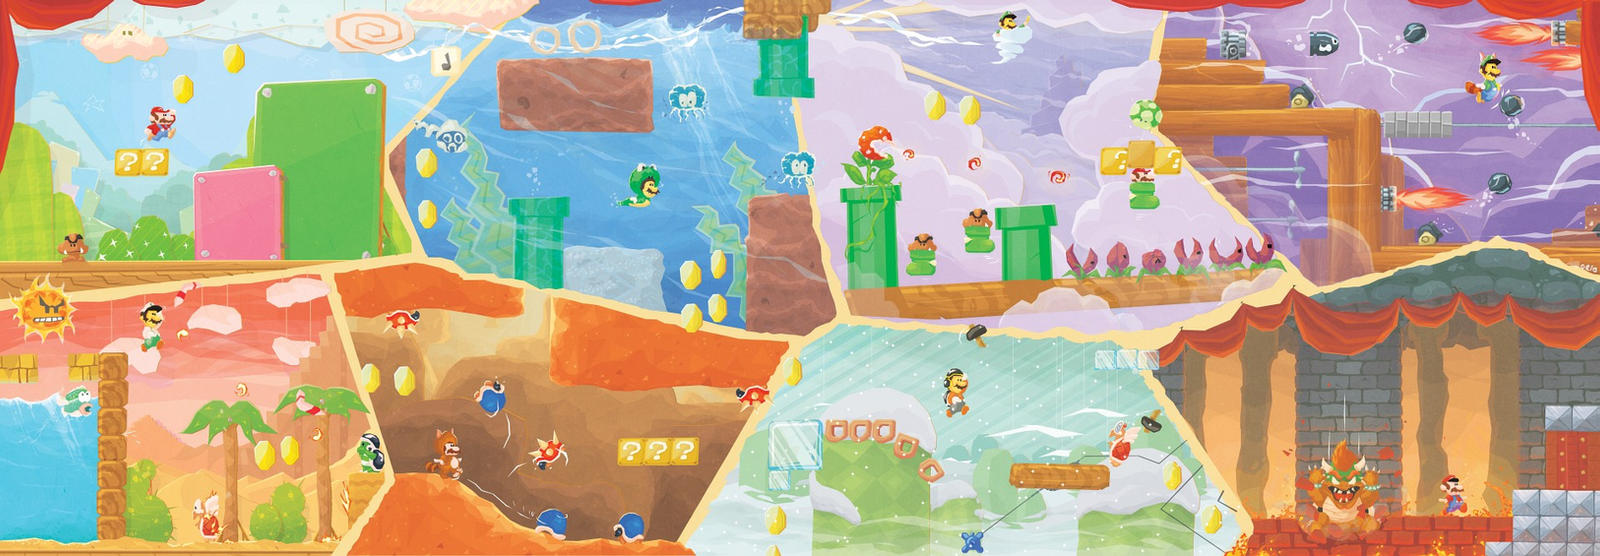 Super Mario Bros 3 Fresco by Orioto